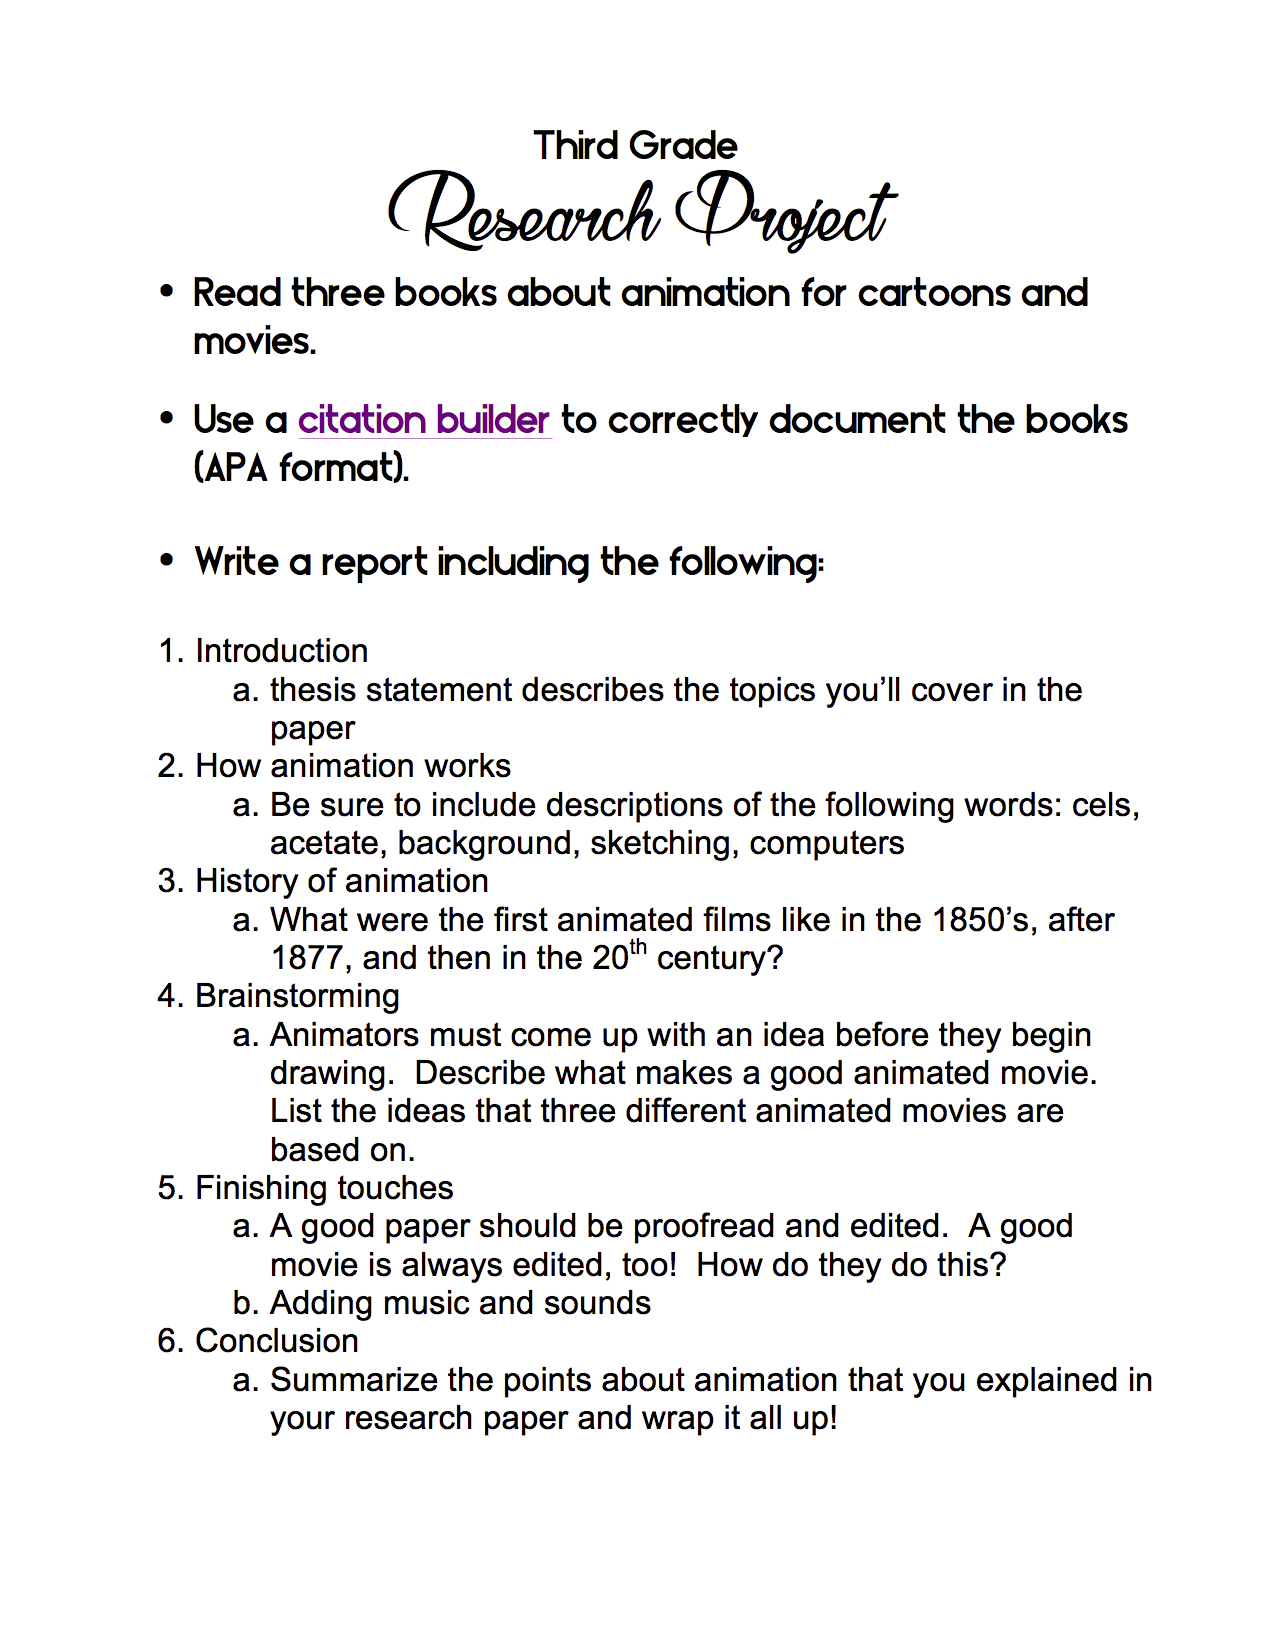 002 Research Paper Cancer Ideas 3rd Grade Shocking Topic Breast Full